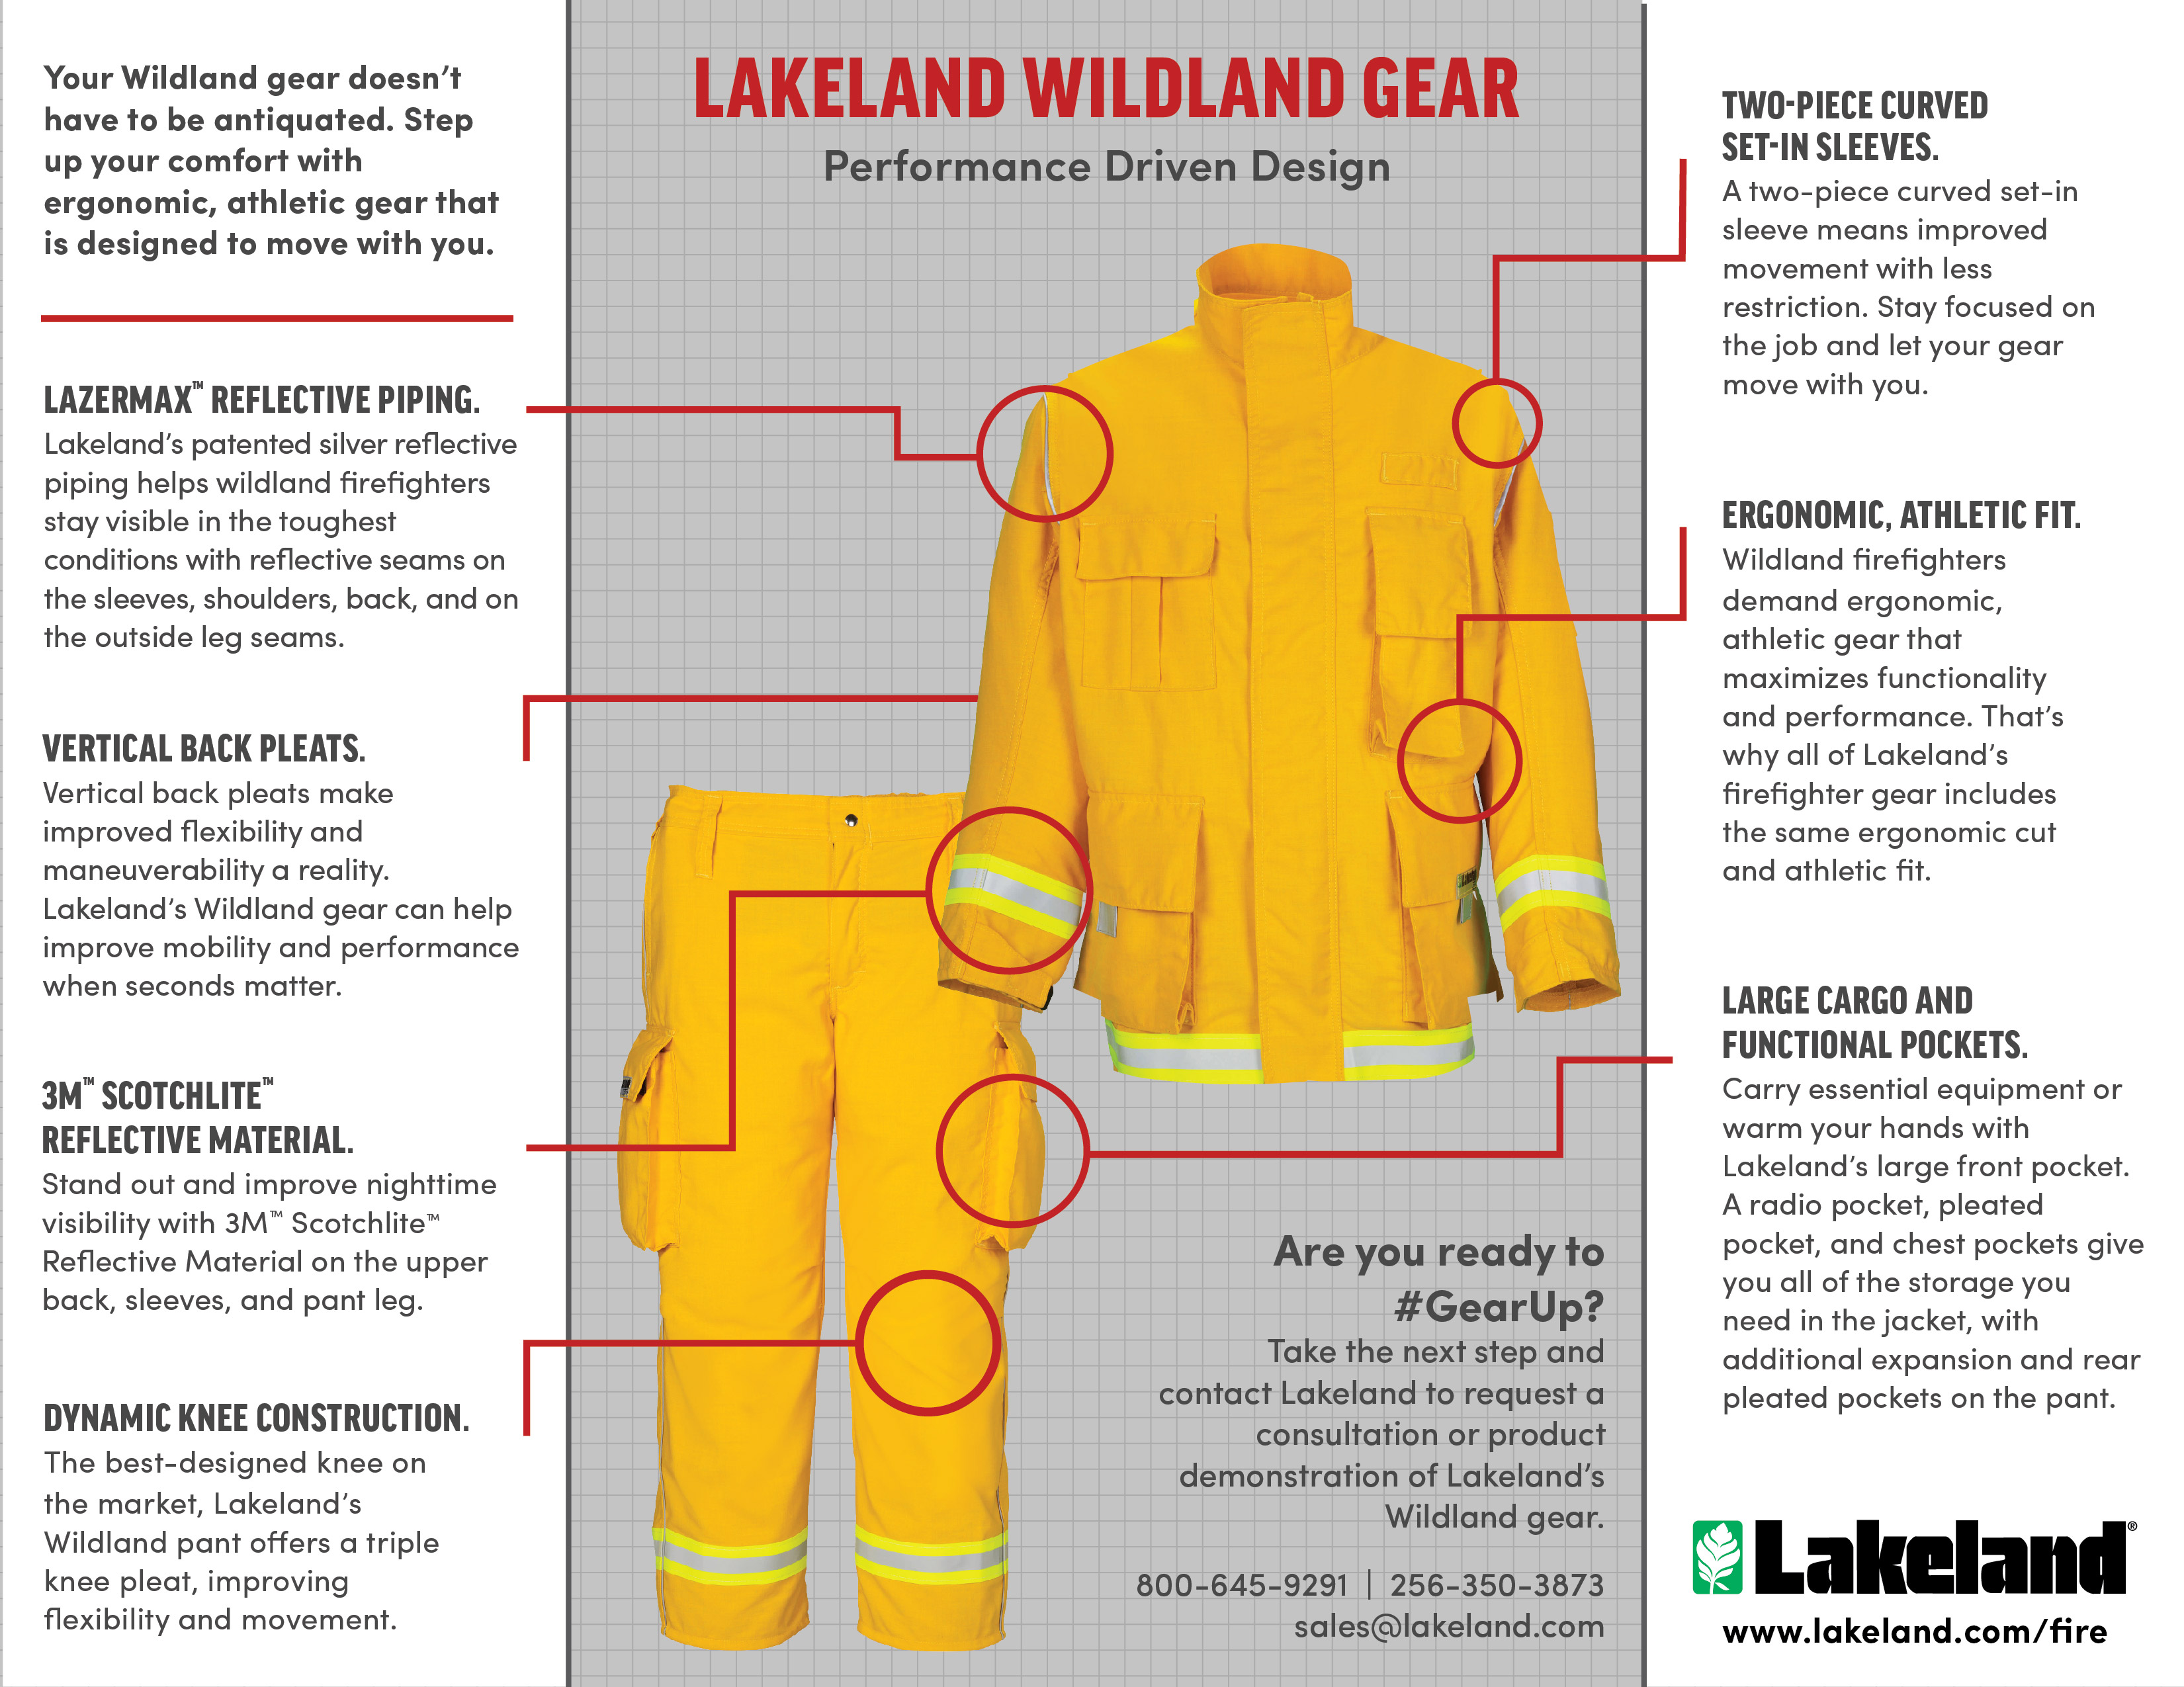 wildland fire gear how to find the right fitwildland fire gear infographic [ 3301 x 2550 Pixel ]